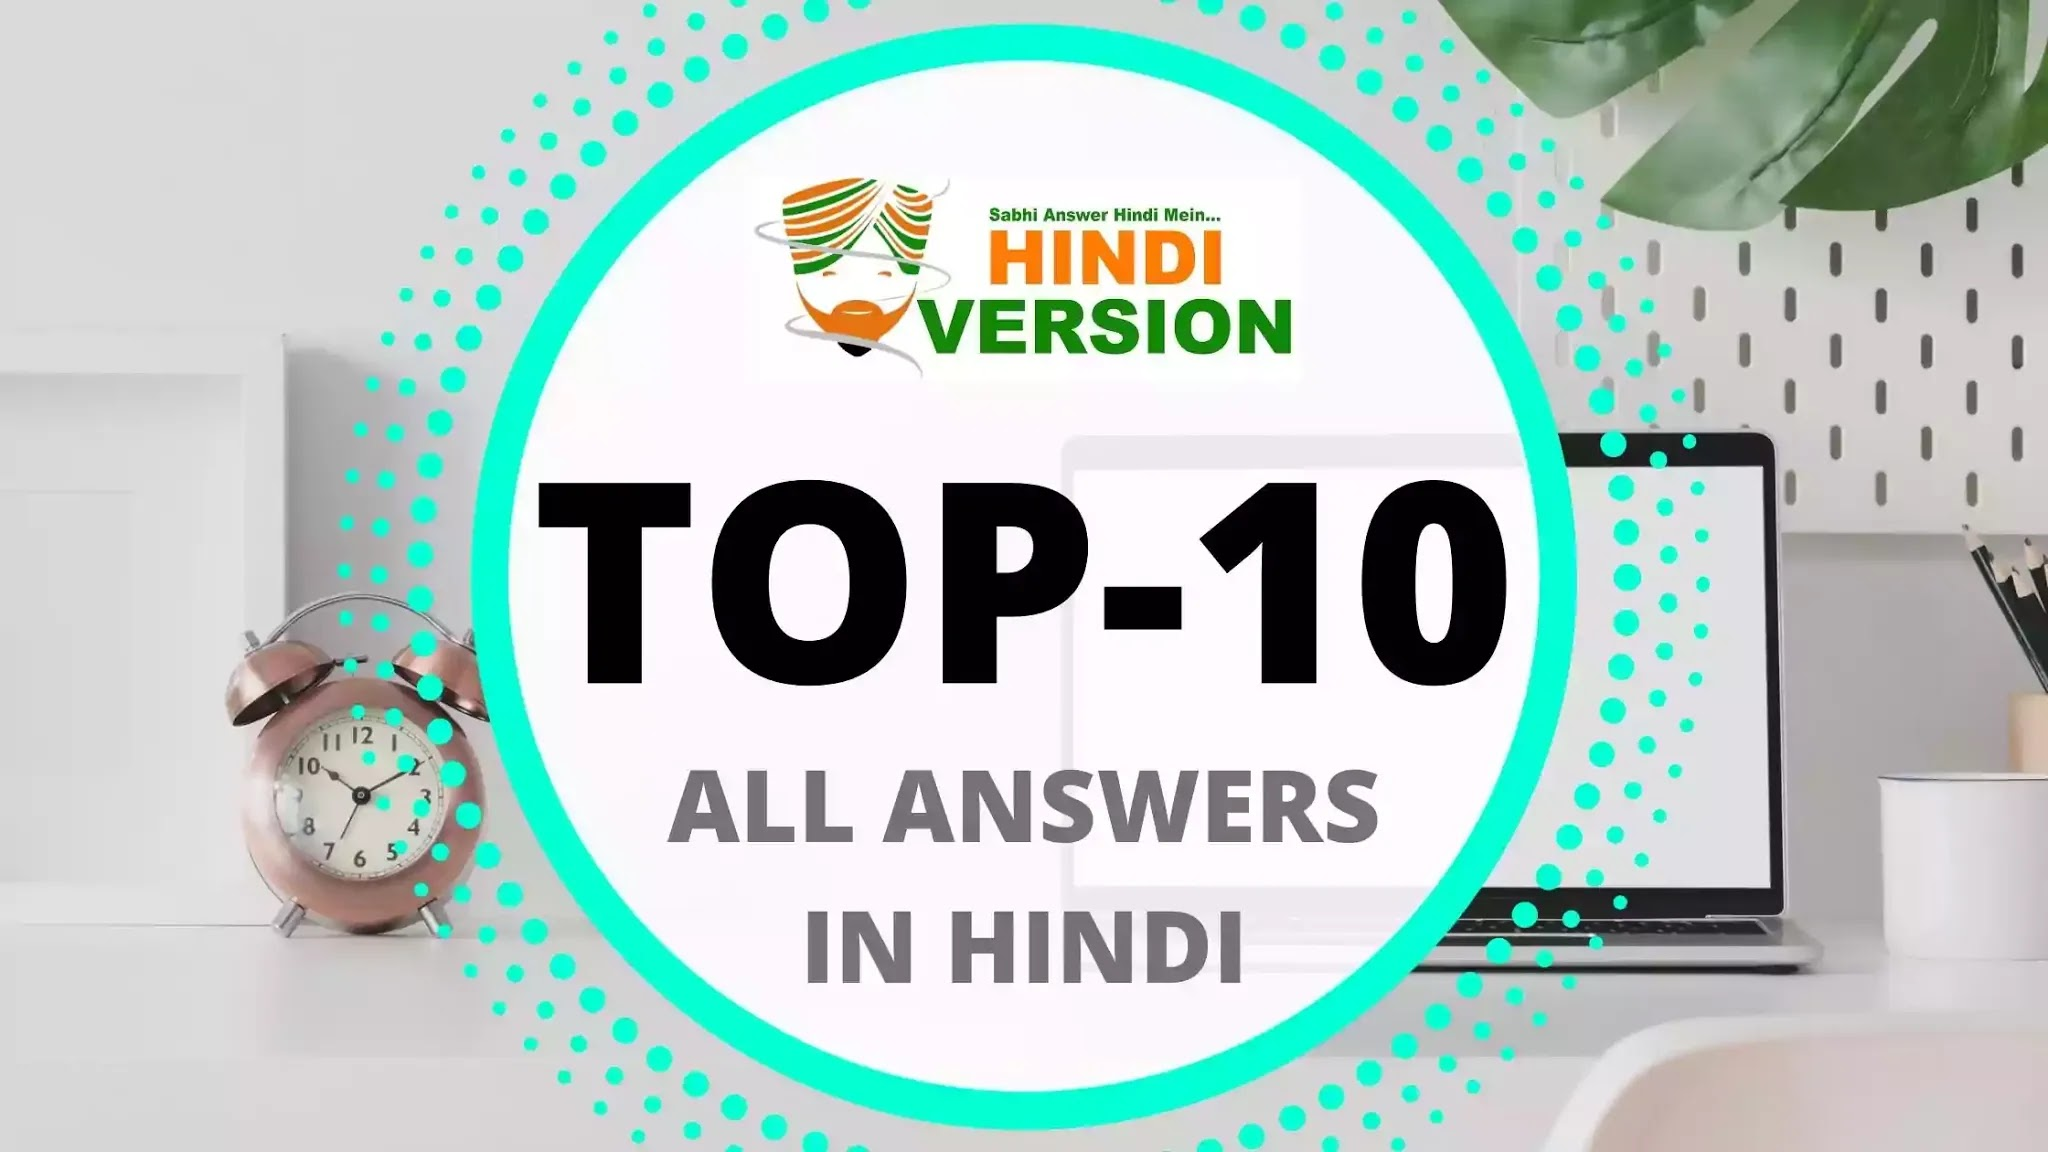 Top 10 - All Top 10 Questions To Answer In Hindi Version